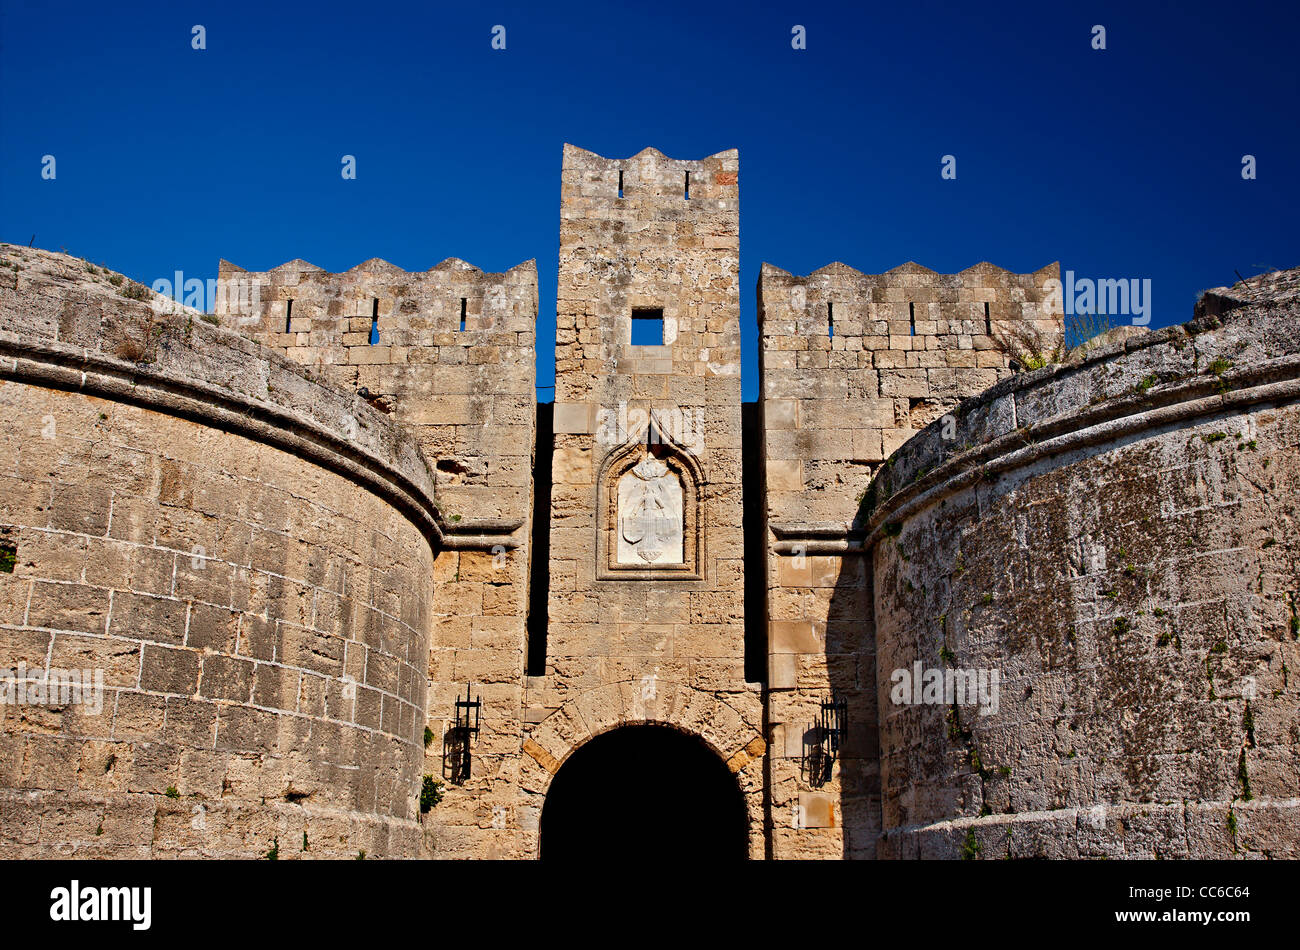 The gate d' Amboise , one of the main gates of the Medieval town of Rhodes island, Dodecanese, Greece - Stock Image